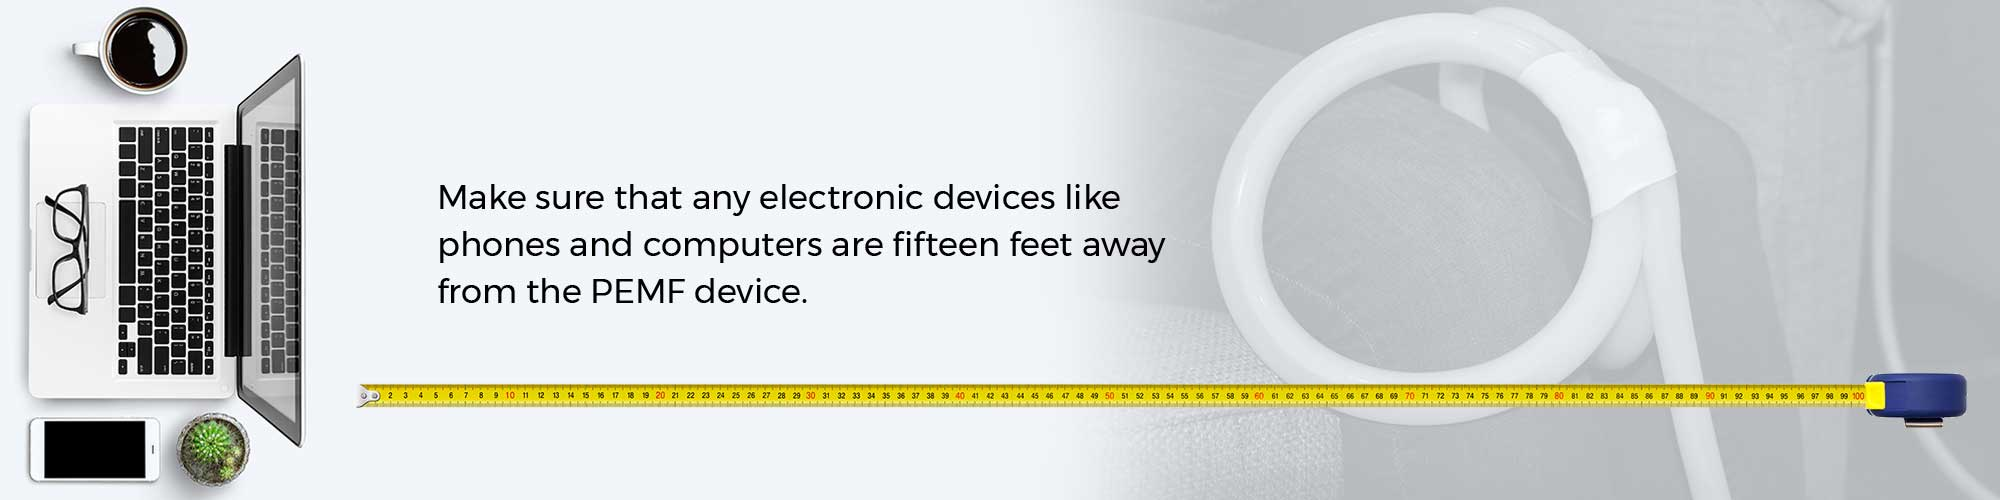 Make sure that any electronic devices like phones and computers are fifteen feet away from the PEMF device.